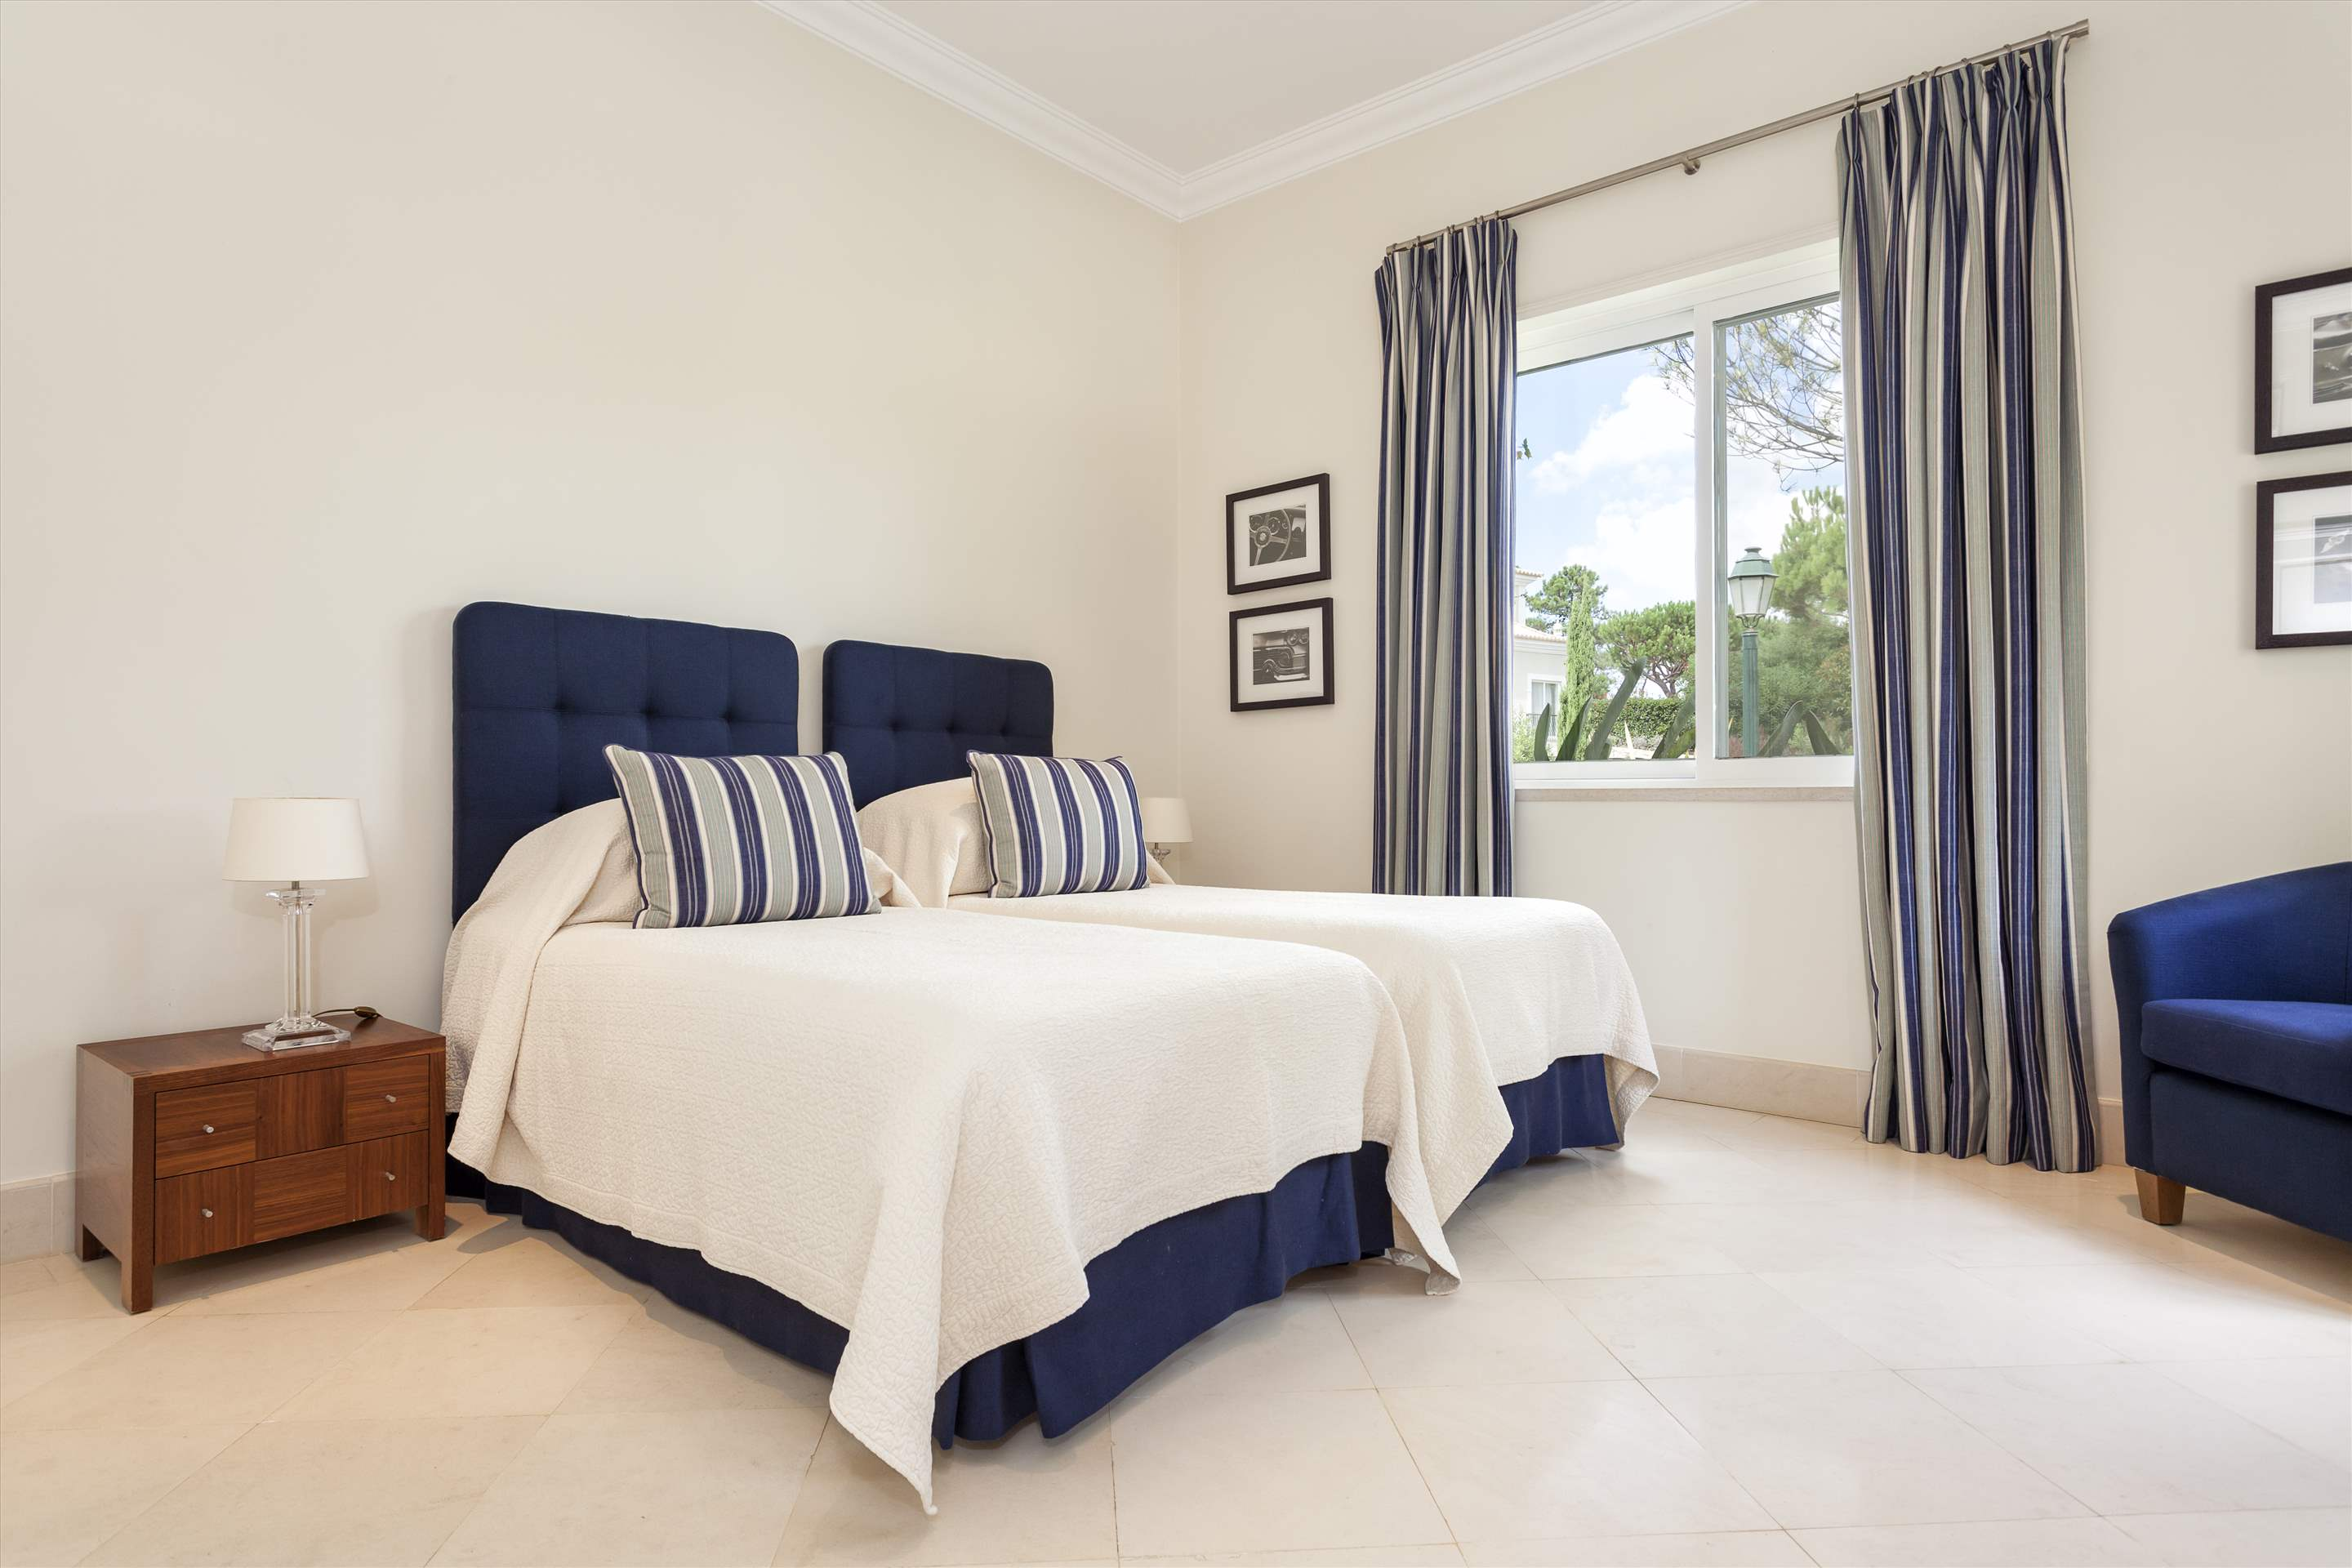 Villa Campainha, 4 Bedroom Rental, 4 bedroom villa in Quinta do Lago, Algarve Photo #17